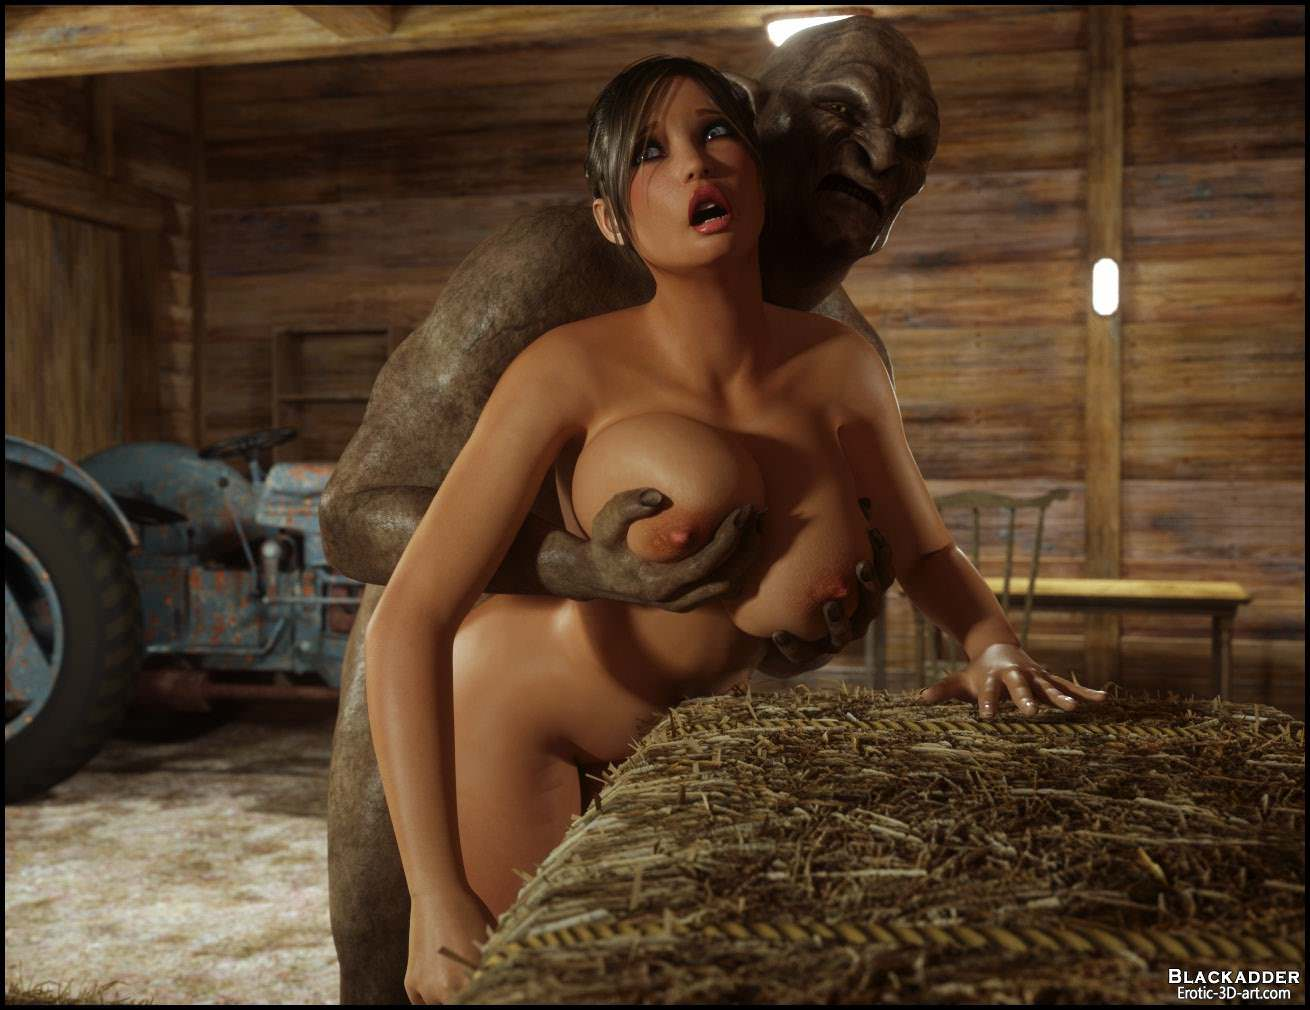 3D Hebtai gisela and demon - 3d, monsters, porn comics online at world